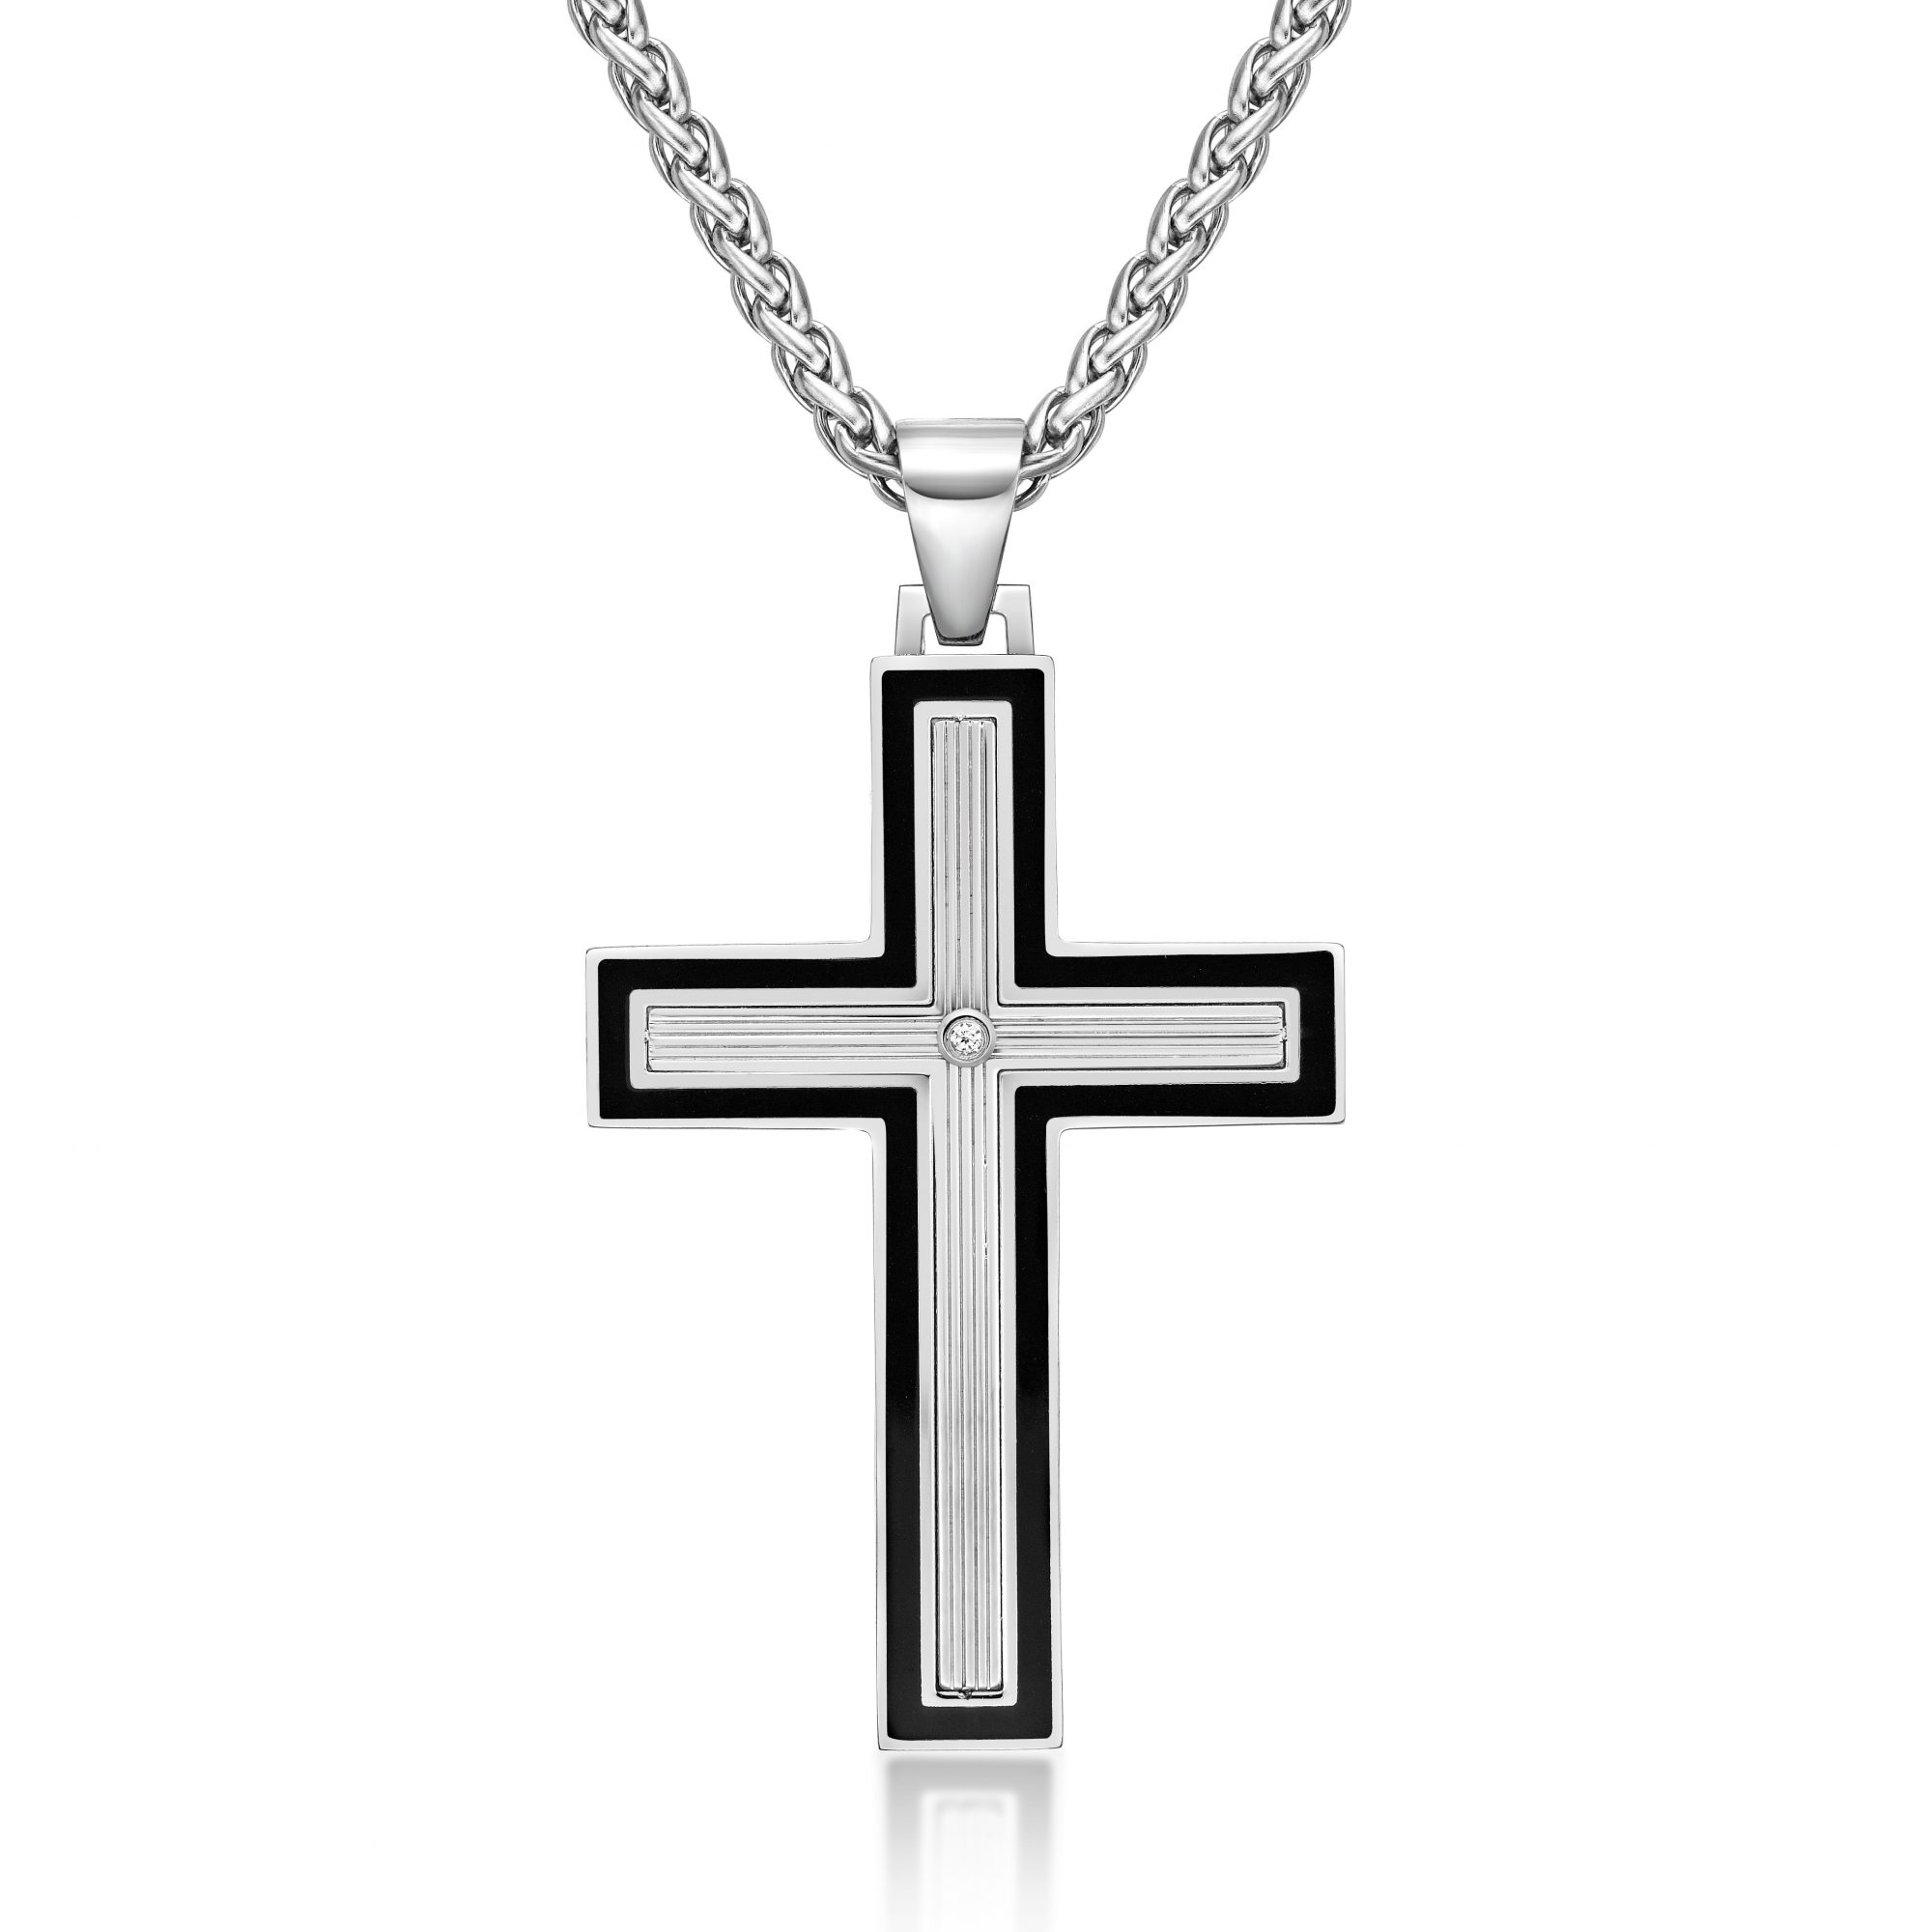 0.01 Round Cubic Zirconia Black Ion Plated Stainless Steel Resin Cross Pendant - 24 Inch Box Chain